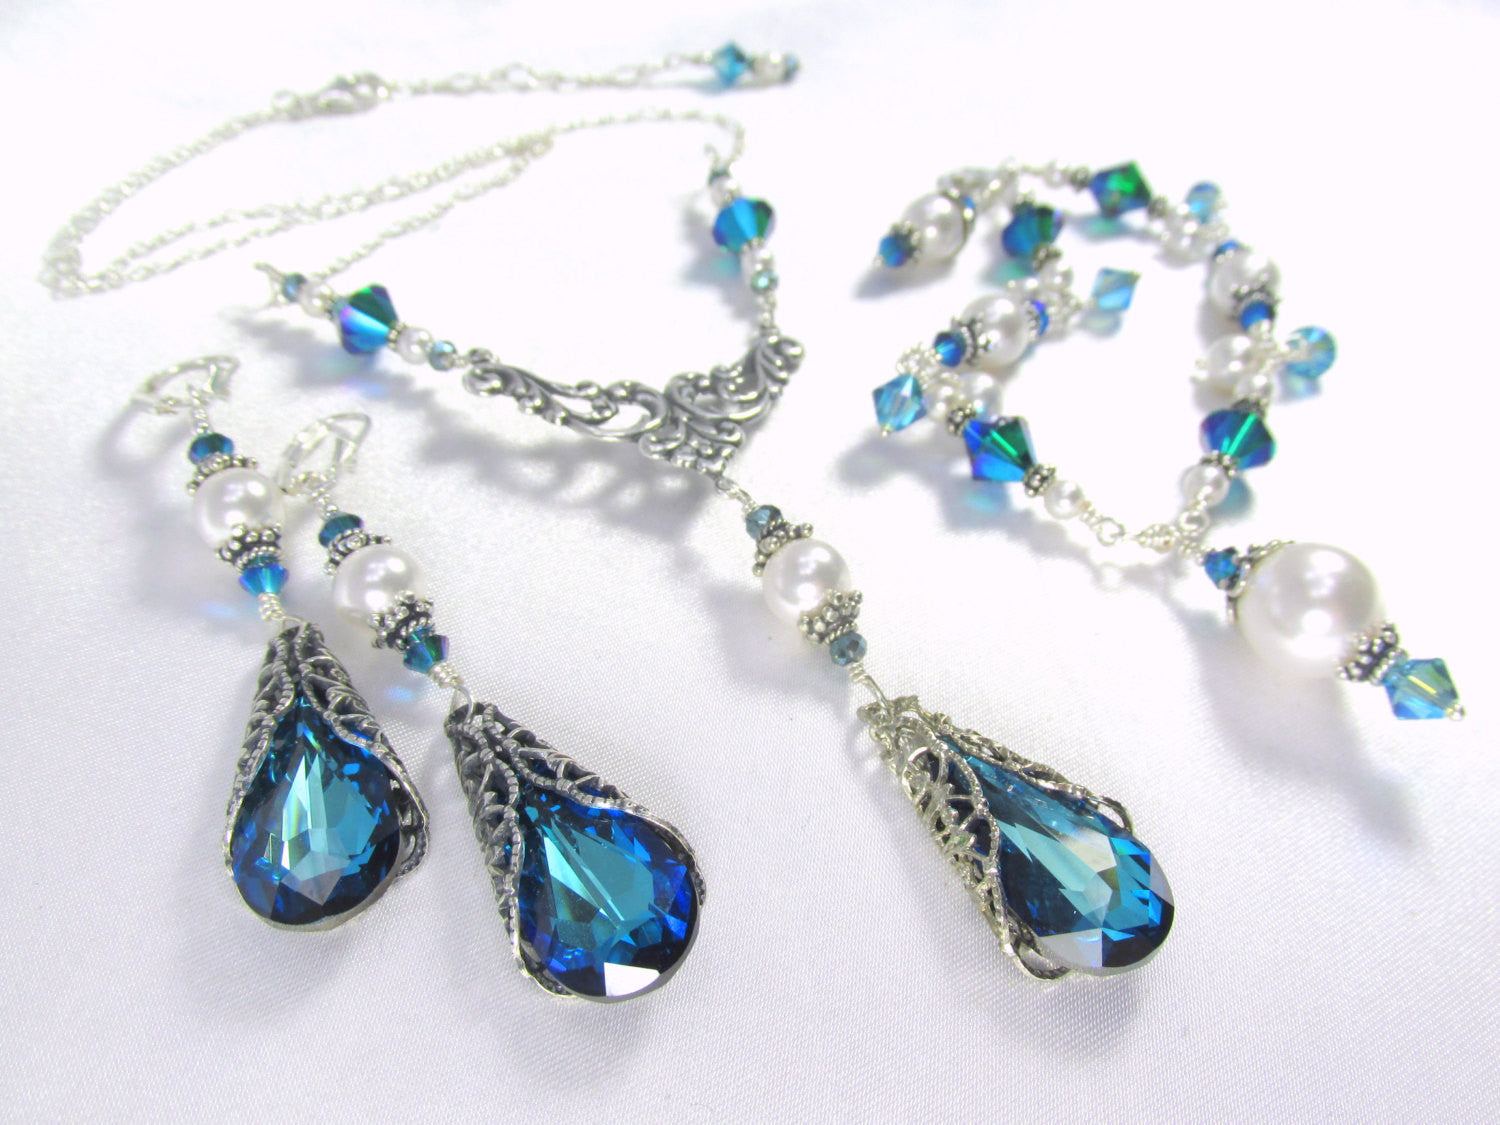 Bermuda Blue Swarovski Teardrop Earrings with Swarovski White Pearls on Sterling Silver Wires - Odyssey Creations